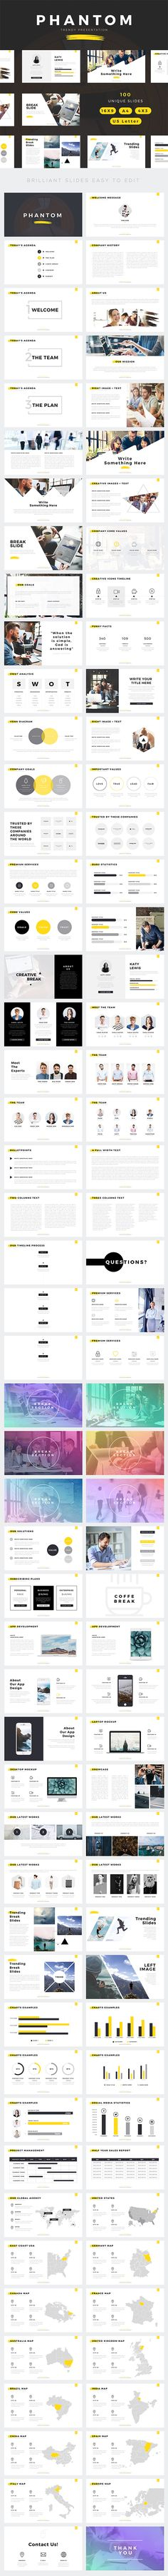 Buy Phantom Modern Keynote Template by slidefusion on GraphicRiver. Phantom – Modern Keynote Template If you need a professional keynote template design to influence your audience or cu. Professional Powerpoint Templates, Creative Powerpoint Templates, Powerpoint Presentation Templates, Keynote Template, Powerpoint Designs, Presentation Design Template, Business Presentation, Presentation Slides, Layout Design